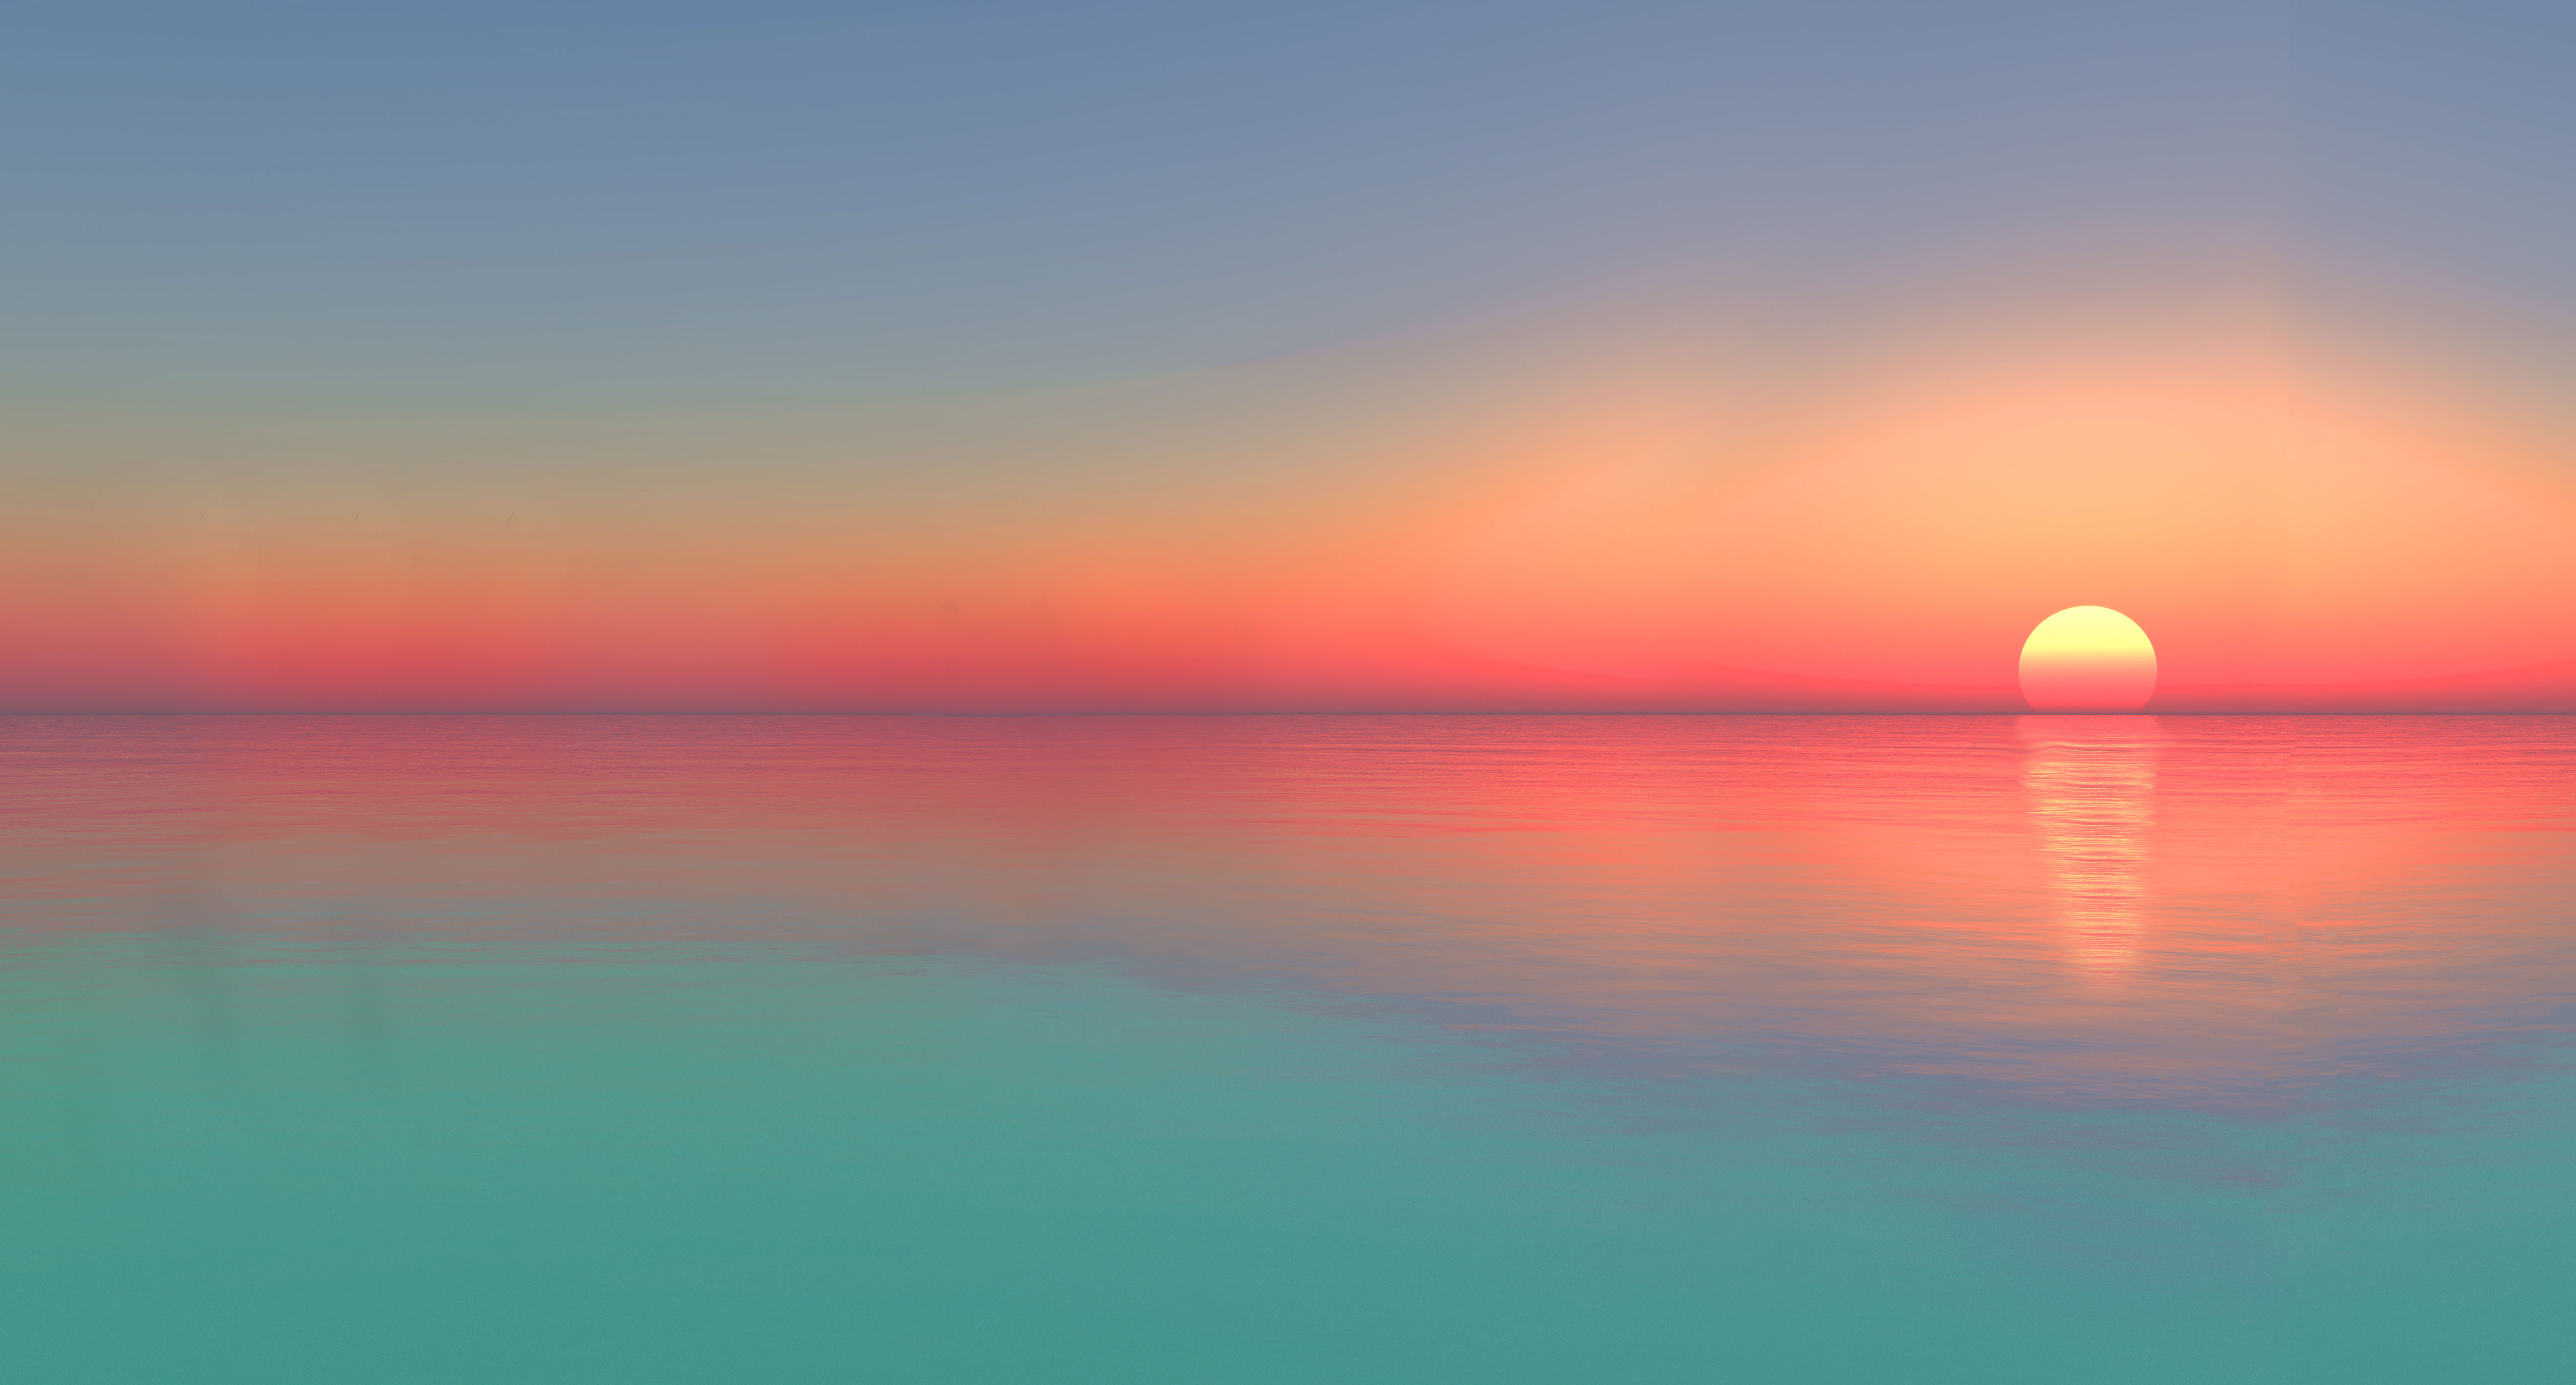 Calm Sunset Ocean Digital Art 5k Hd Artist 4k Wallpapers Images Backgrounds Photos And Pictures 2020 popular 1 trends in home & garden, cellphones & telecommunications, jewelry & accessories, women's clothing with ocean wave sunset and 1. calm sunset ocean digital art 5k hd